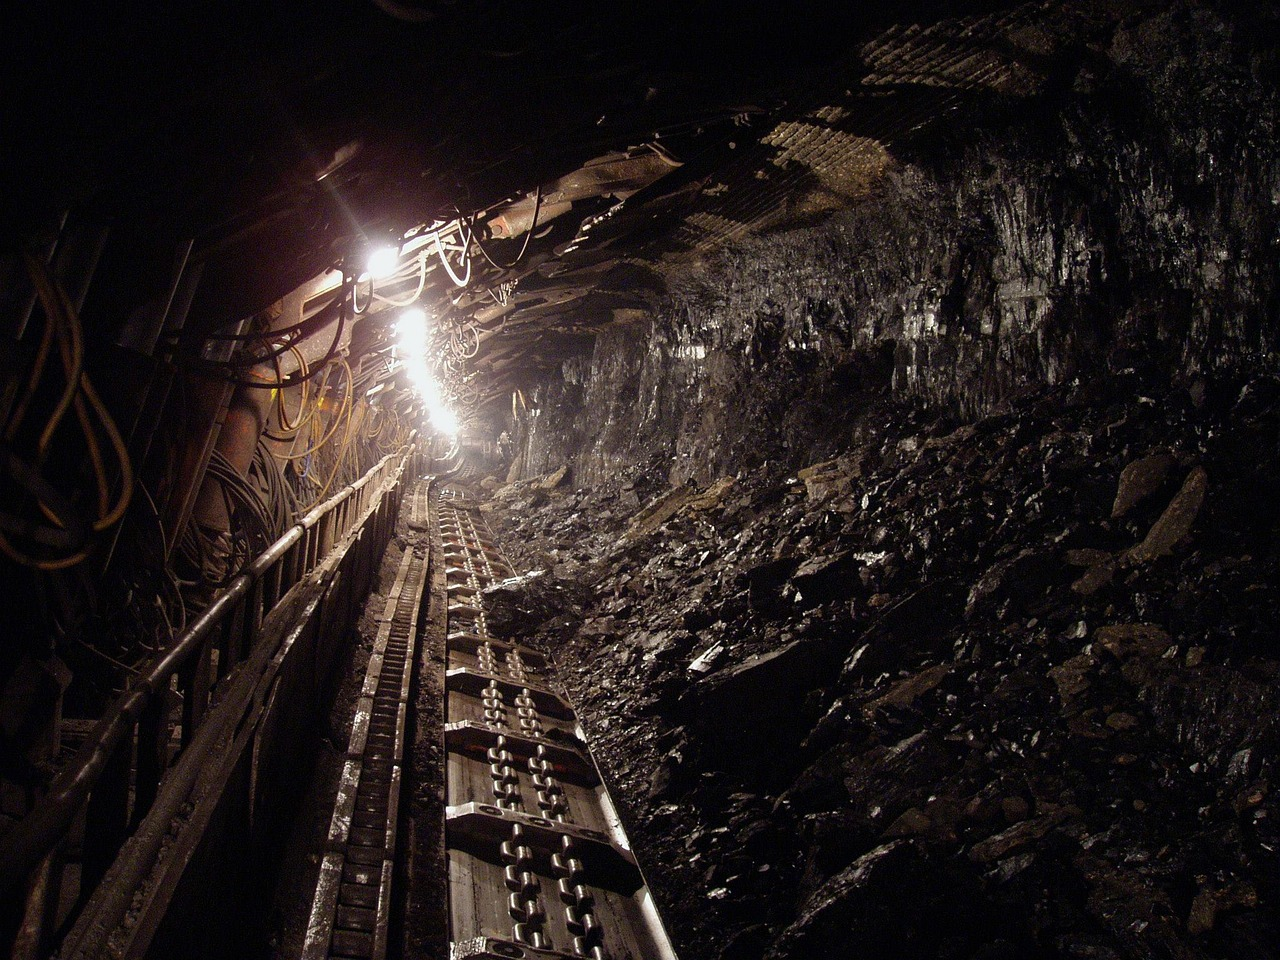 coal mine, a view from underground